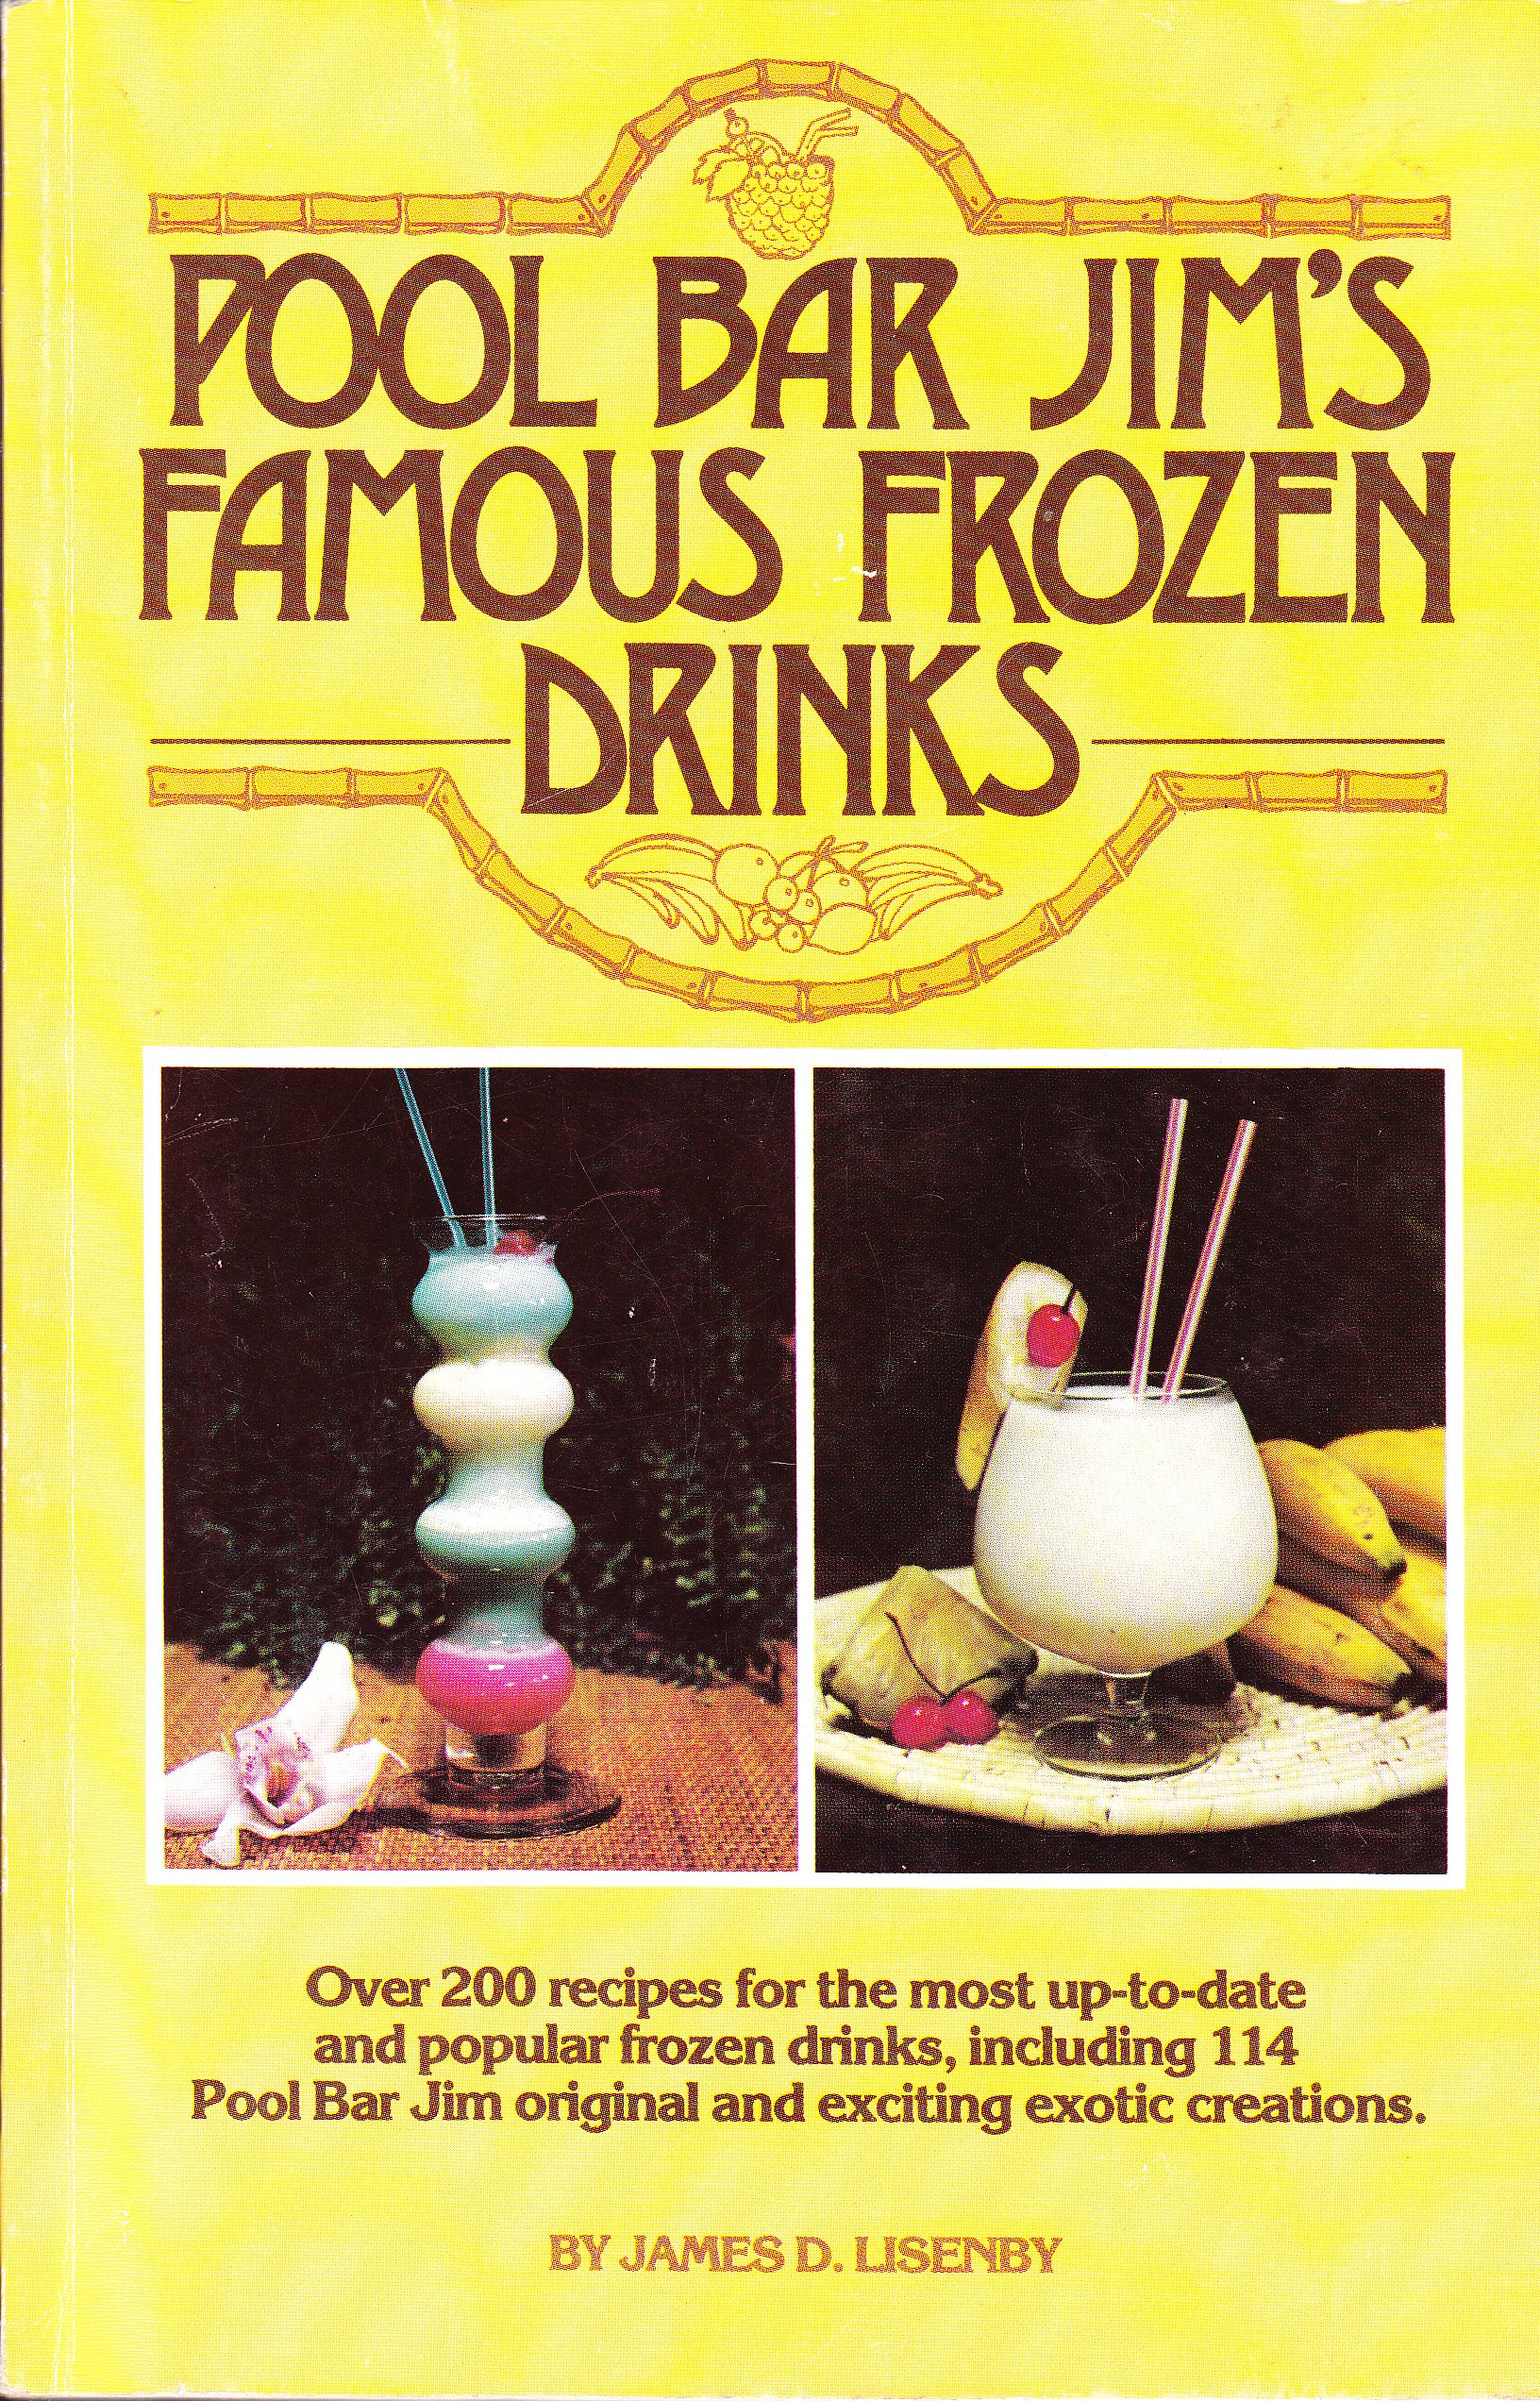 Pool Bar Jim\'s Famous Frozen Drinks: James D. Lisenby: Amazon.com: Books